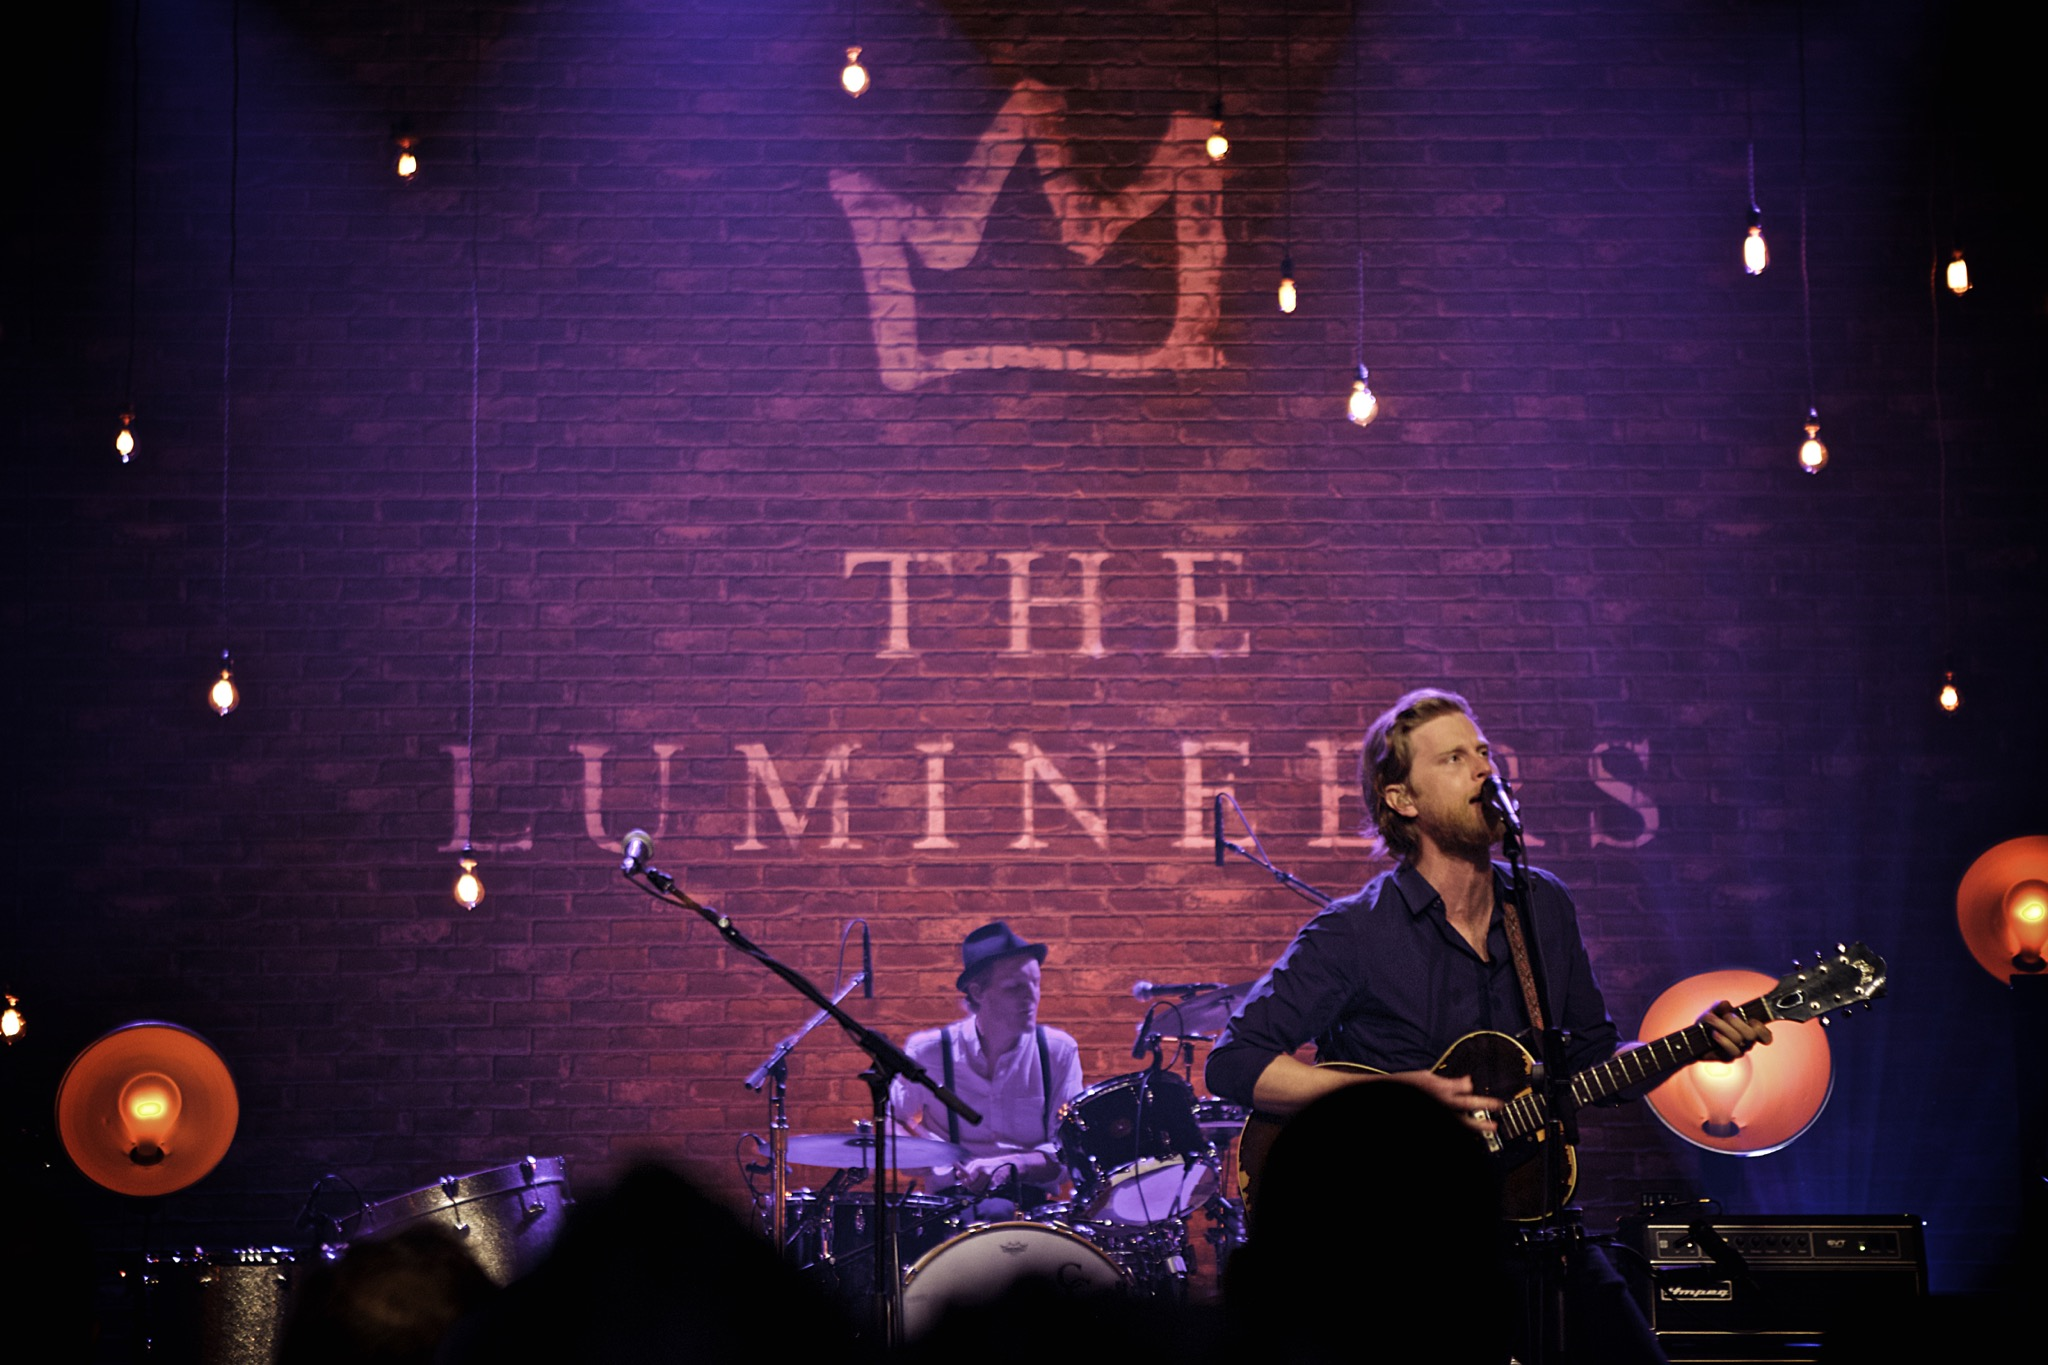 The Lumineers at iHeartRadio